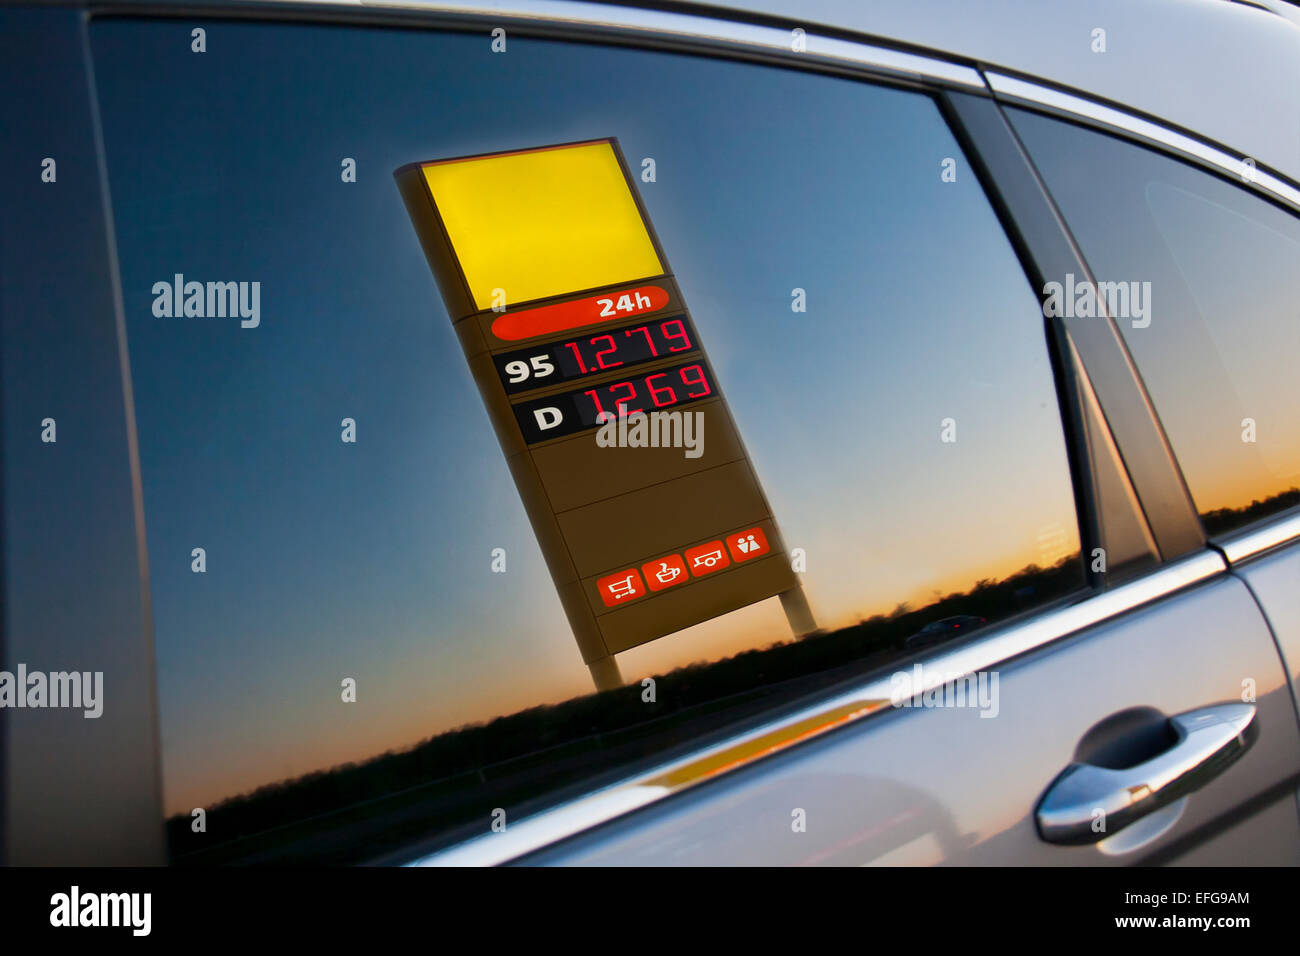 Gas, petrol station price post refection on car side glass. Door, closeup. - Stock Image